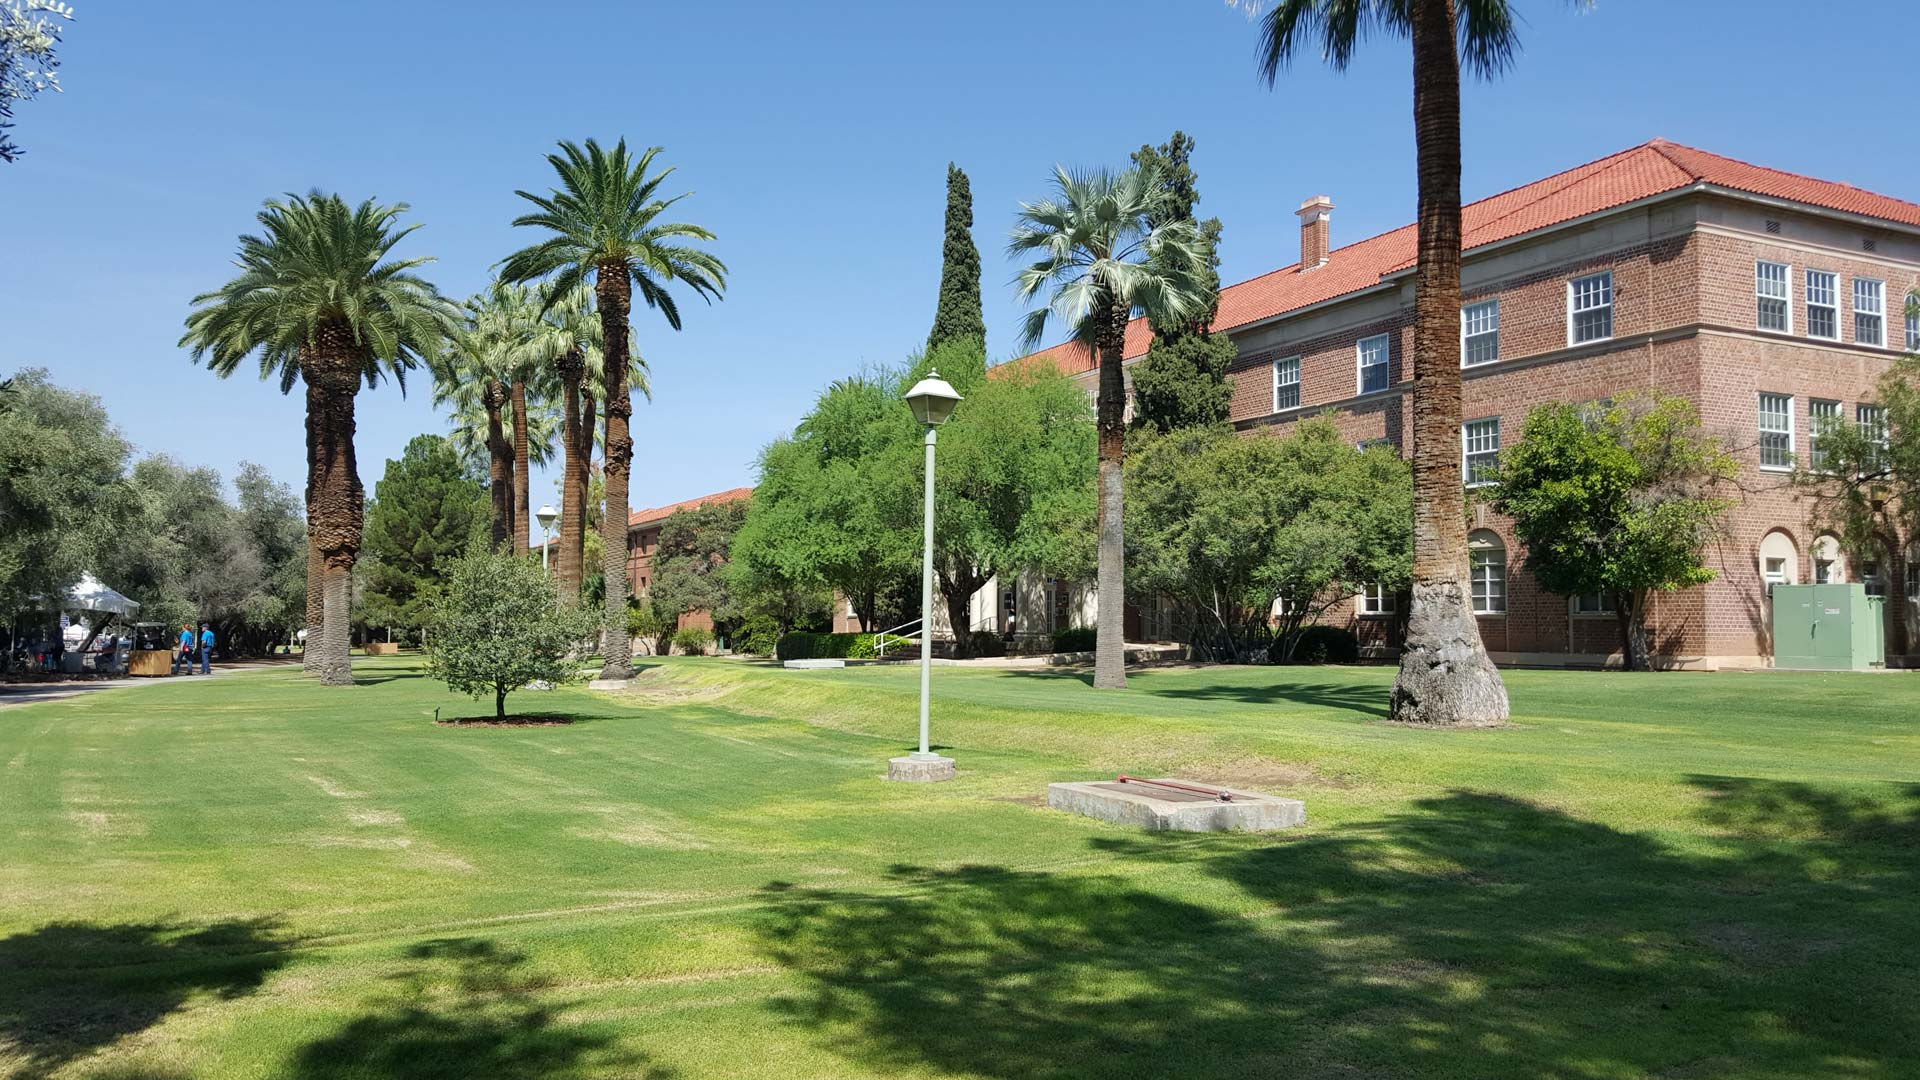 A dormitory on the campus of the University of Arizona.